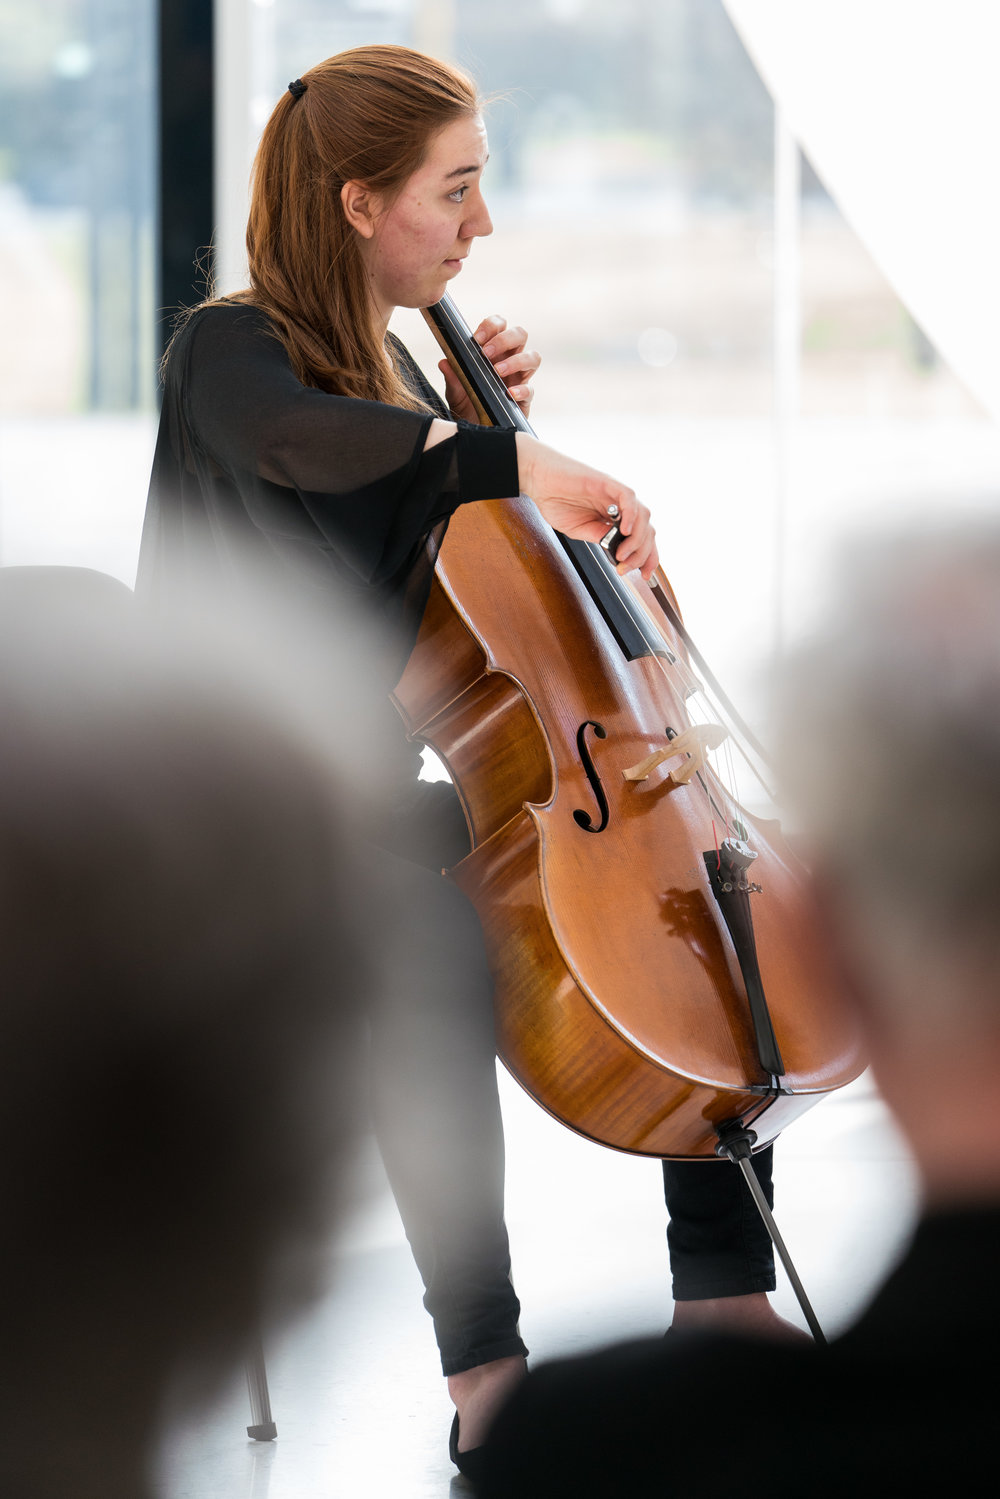 Konzert am Mittag - Cello20180206_027-036.jpg